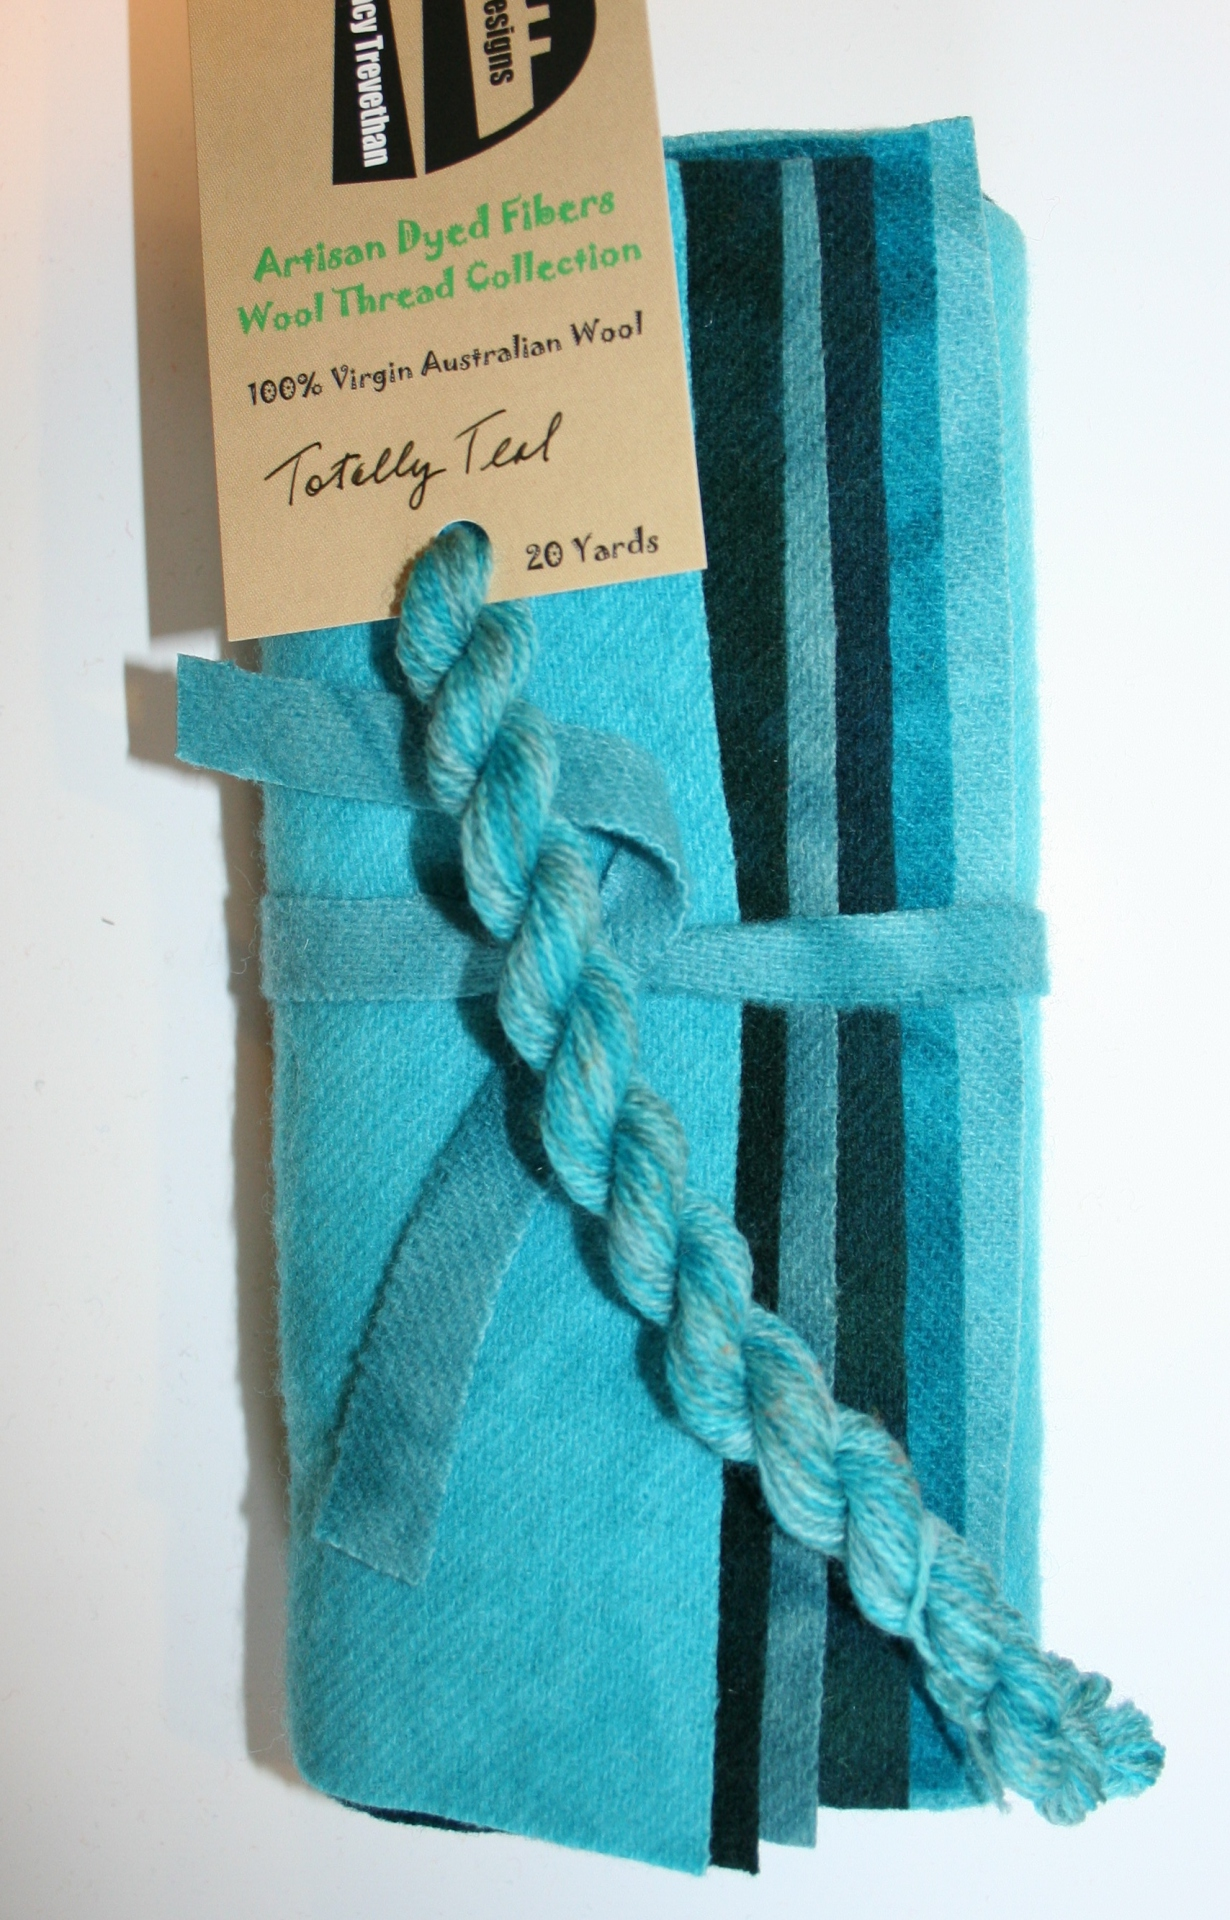 Totally Teal Hand Dyed Wool Six Pack Collection